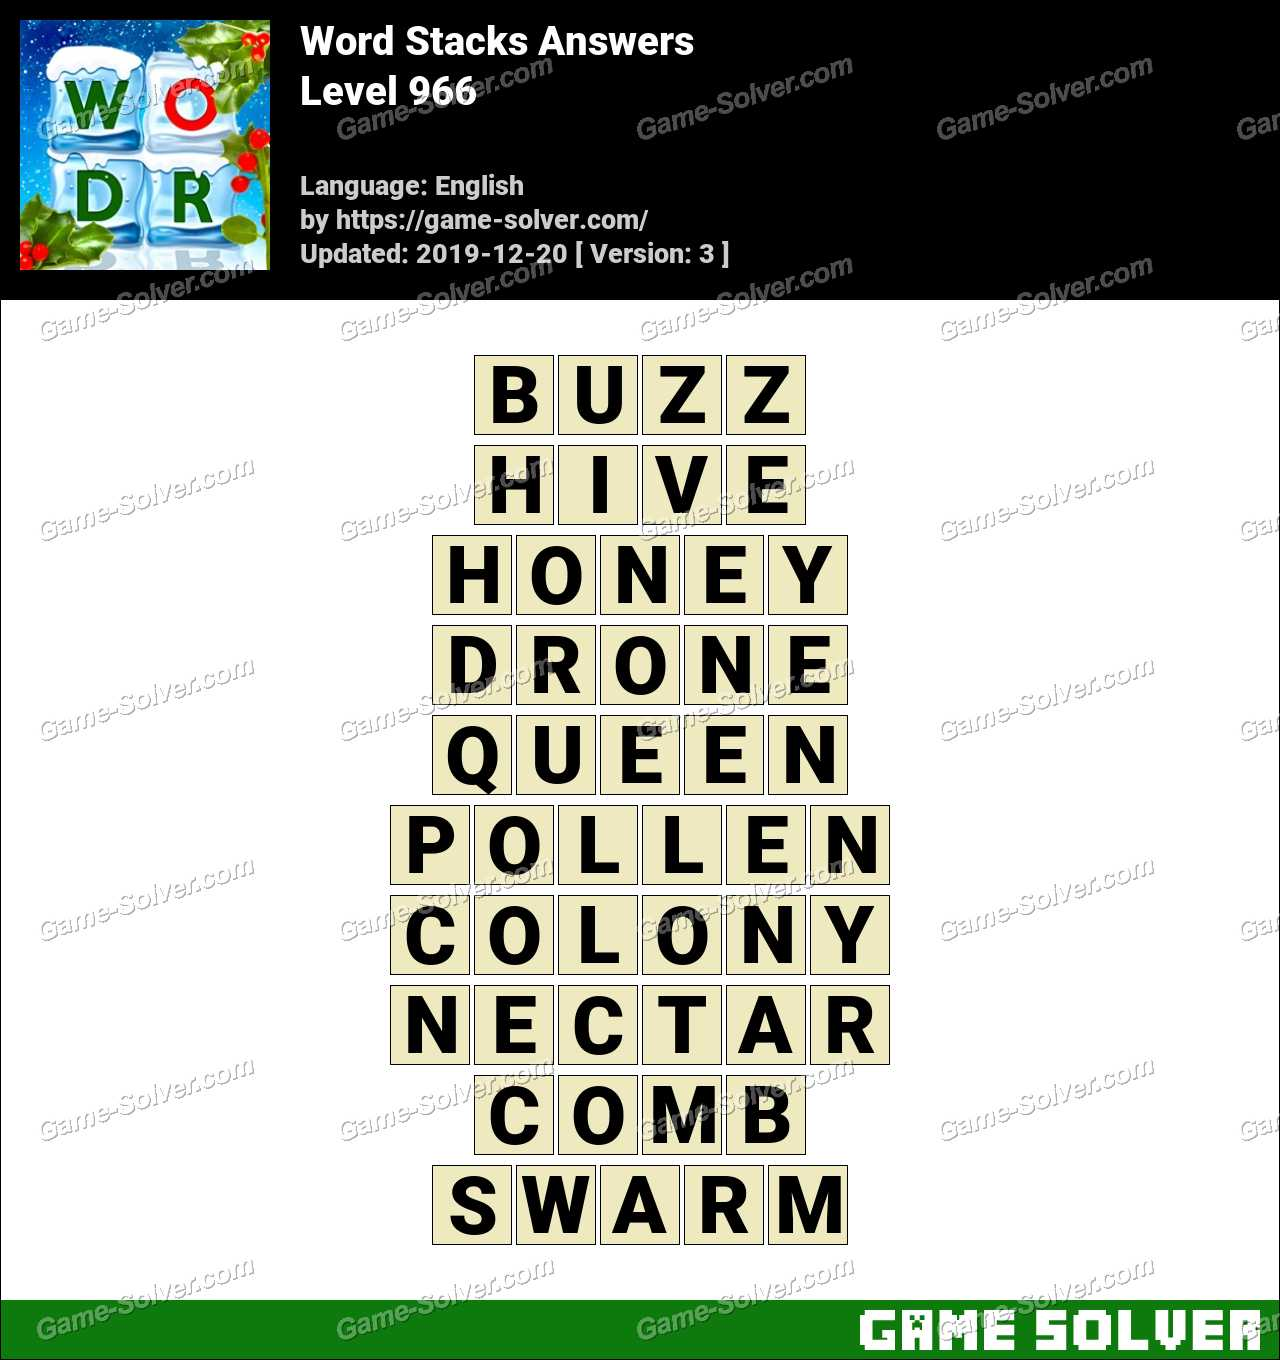 Word Stacks Level 966 Answers